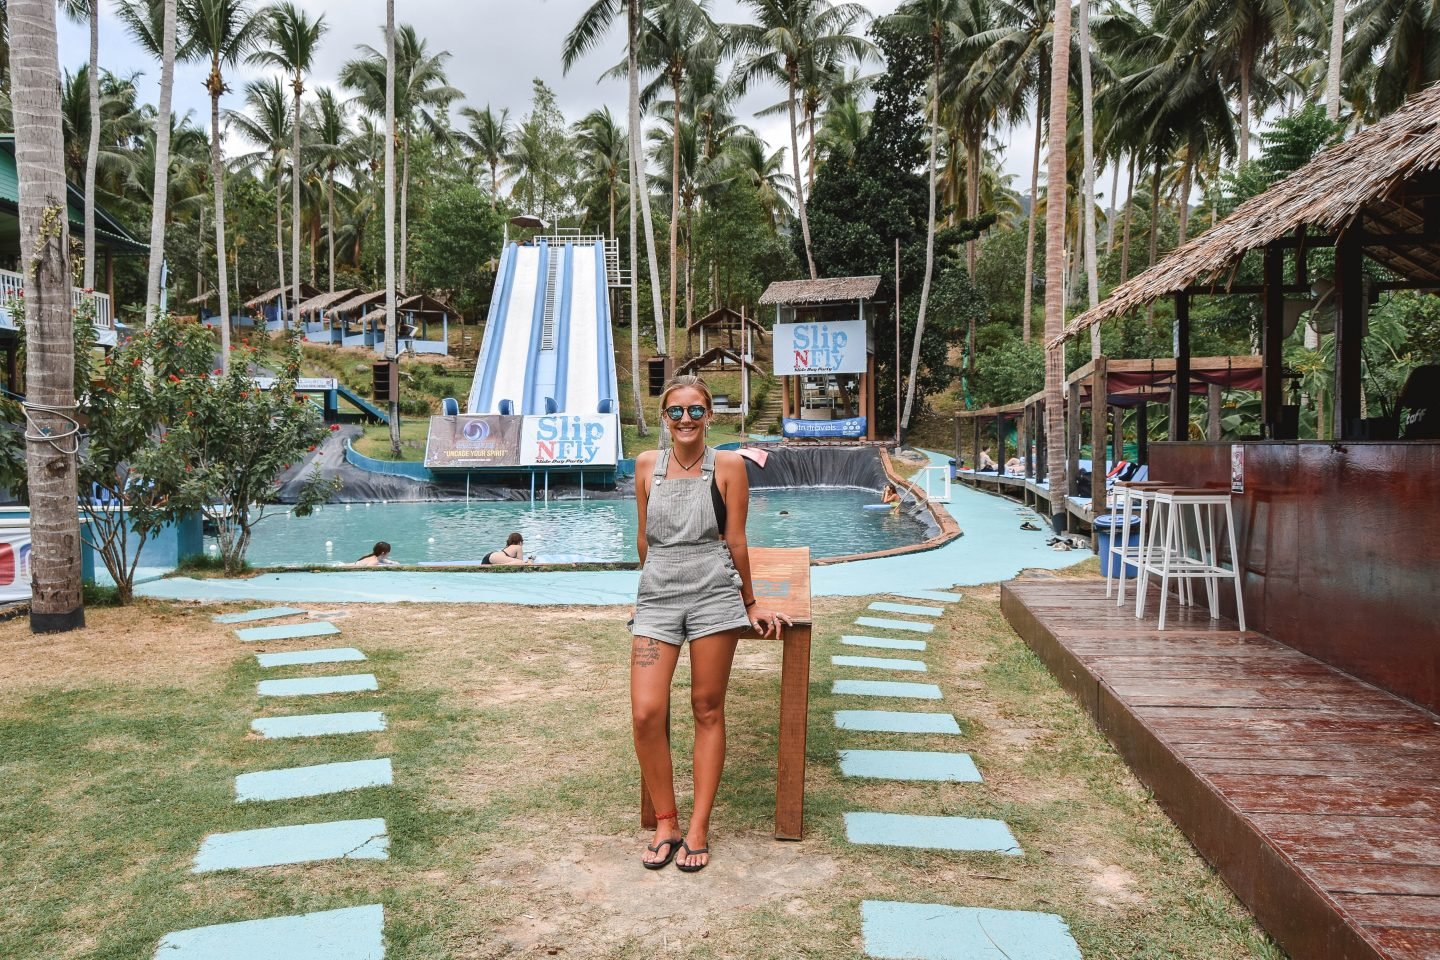 Slip N Fly Koh Phangan – How To Get There, Prices + More